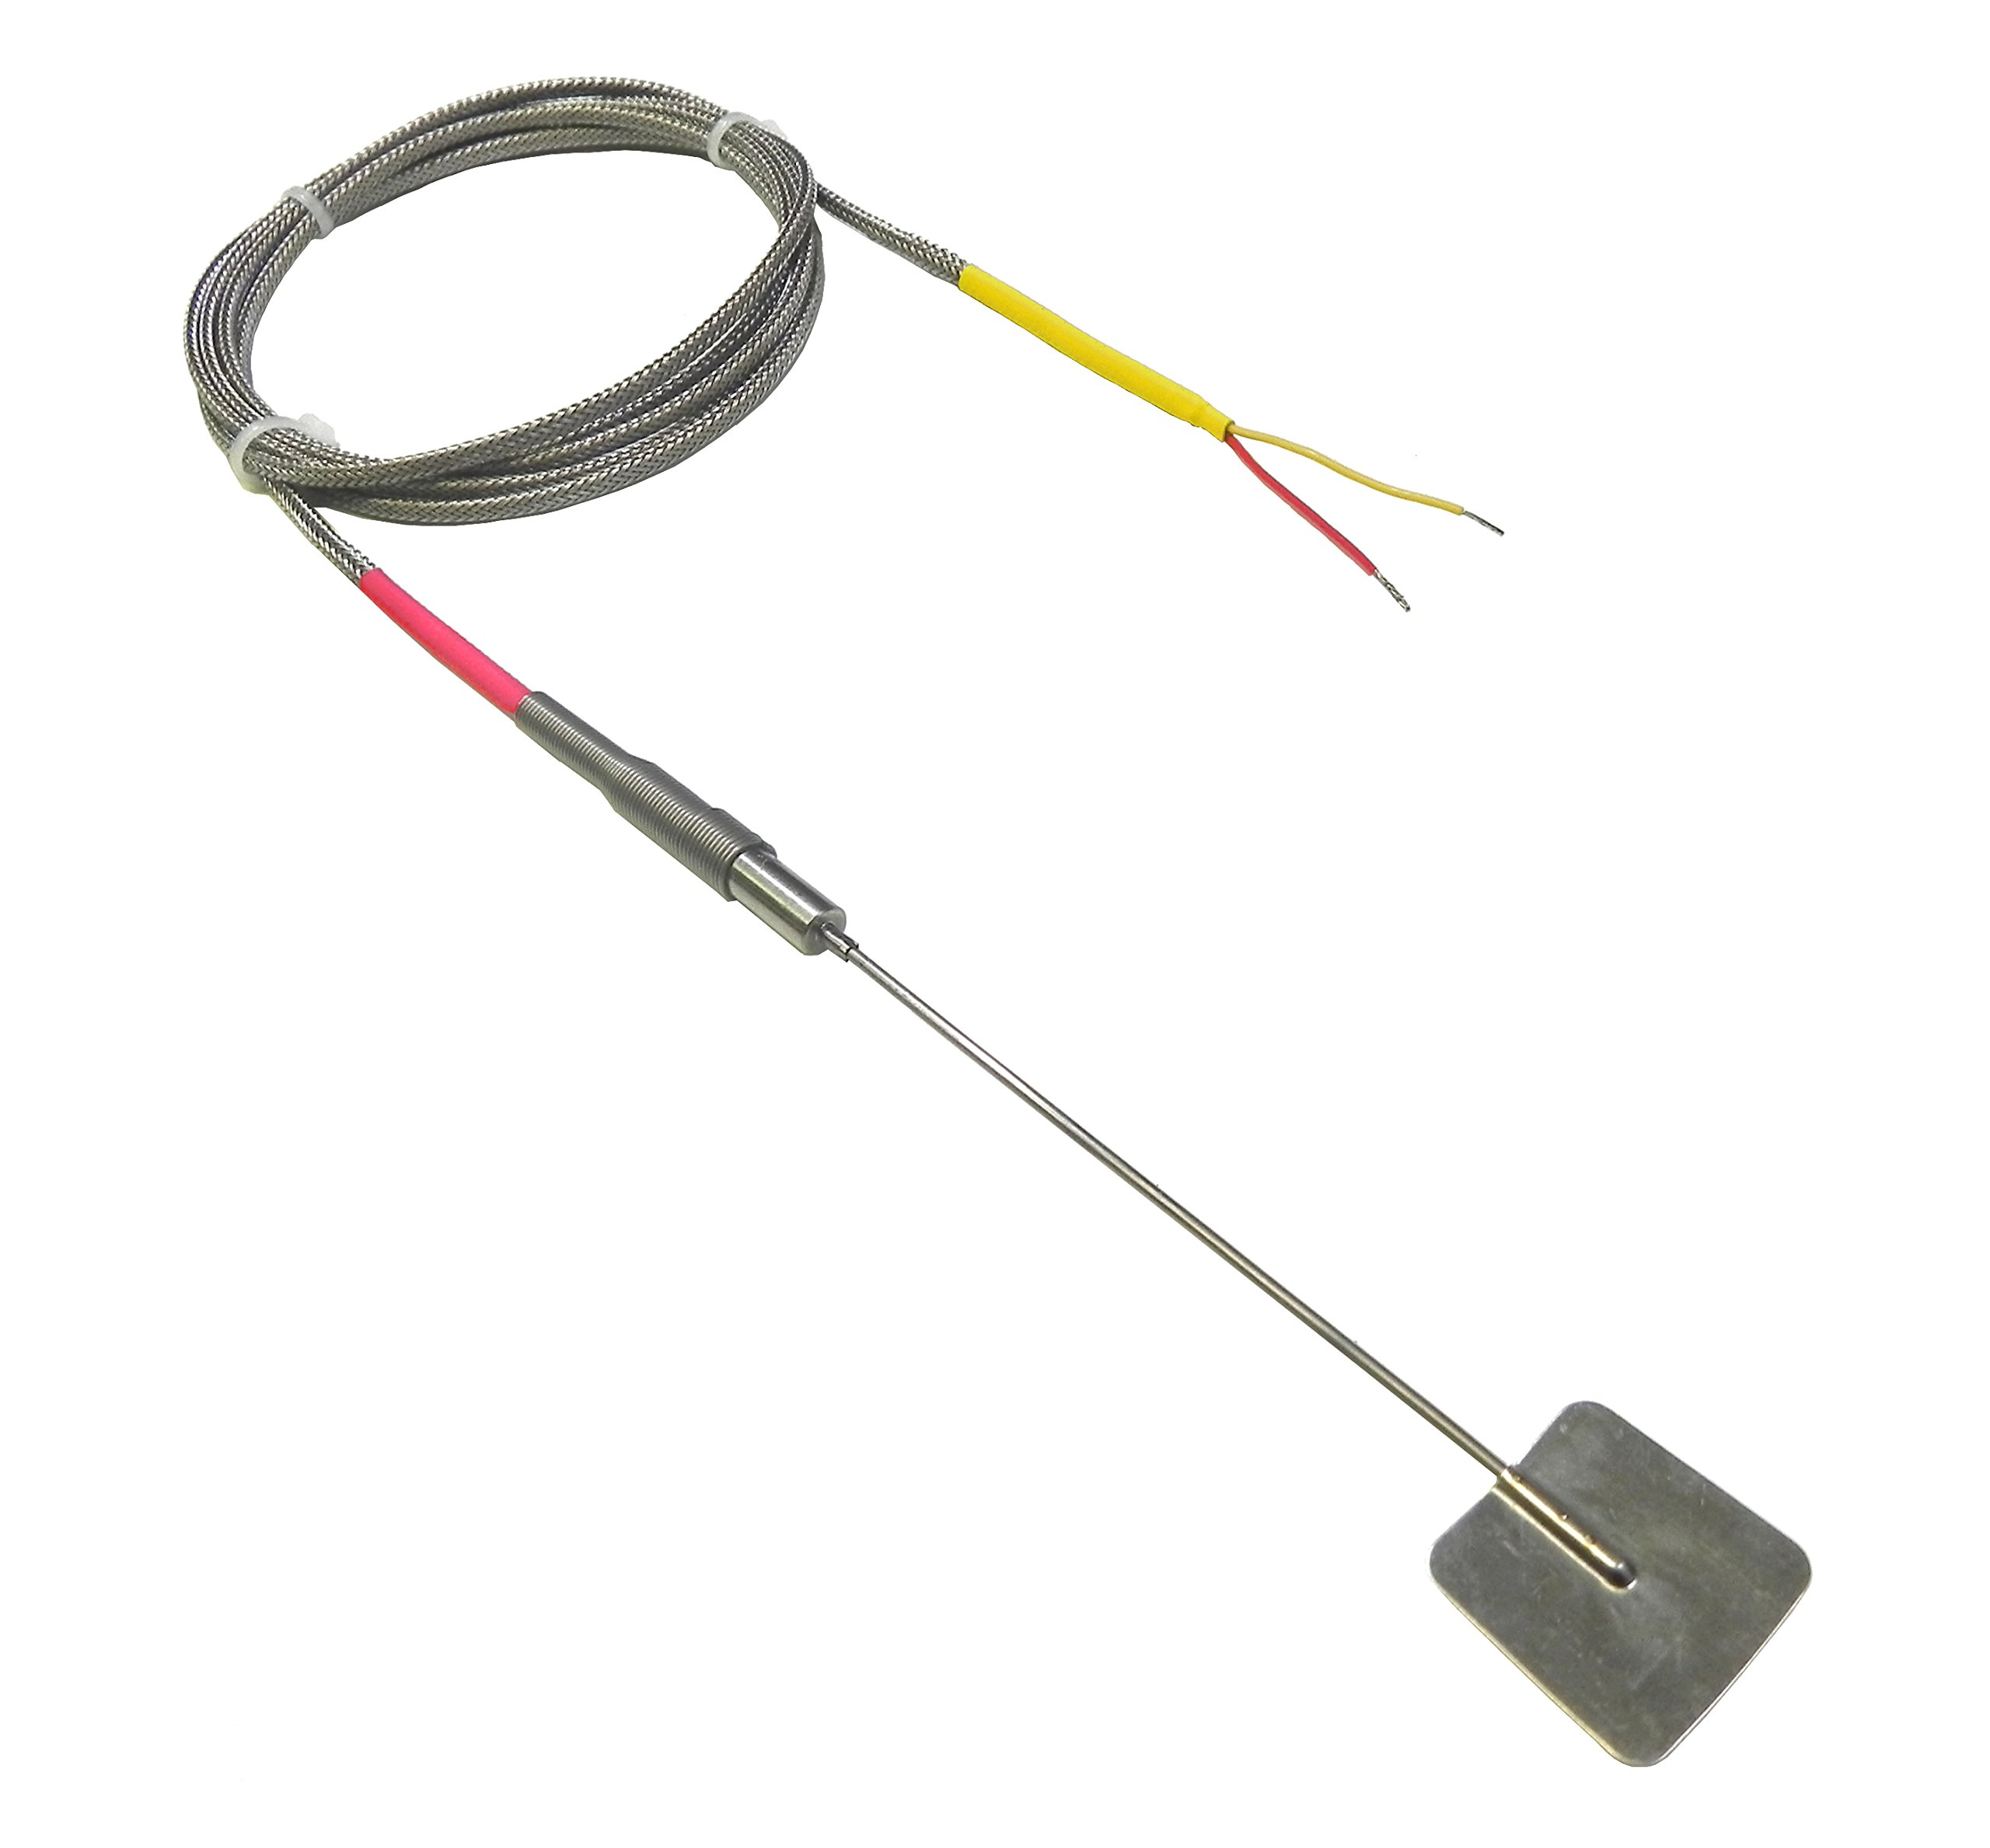 Exhaust Manifold or Pipe Surface Thermocouple Temperature Sensor - with 25 foot long cable